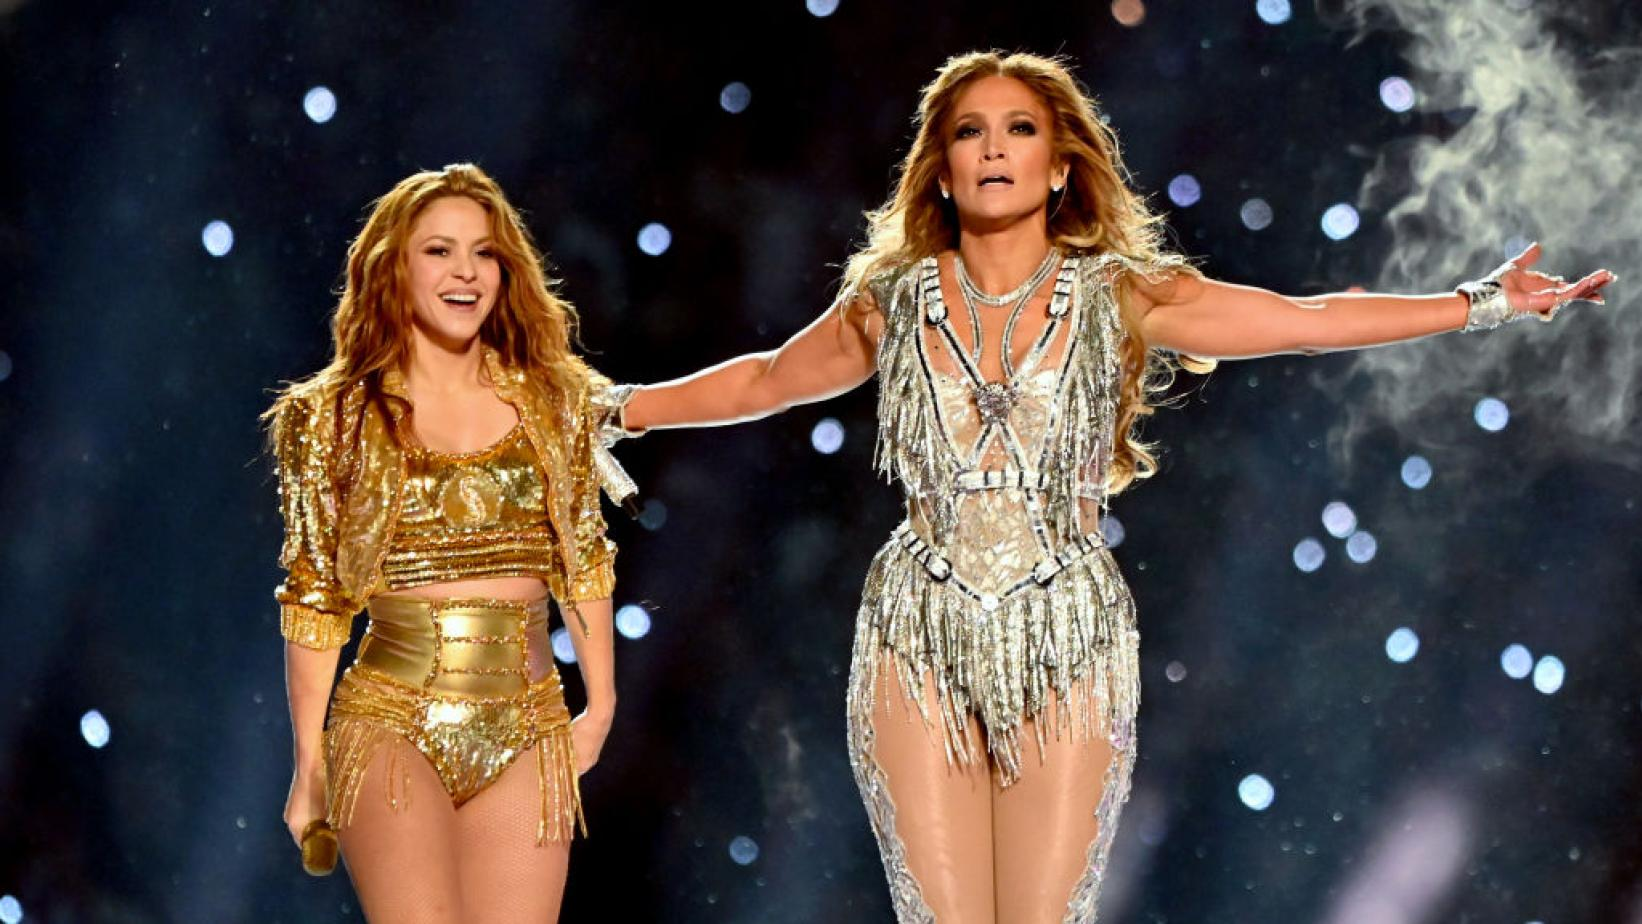 JLo and Shakira bring the heat at Superbowl Halftime Show